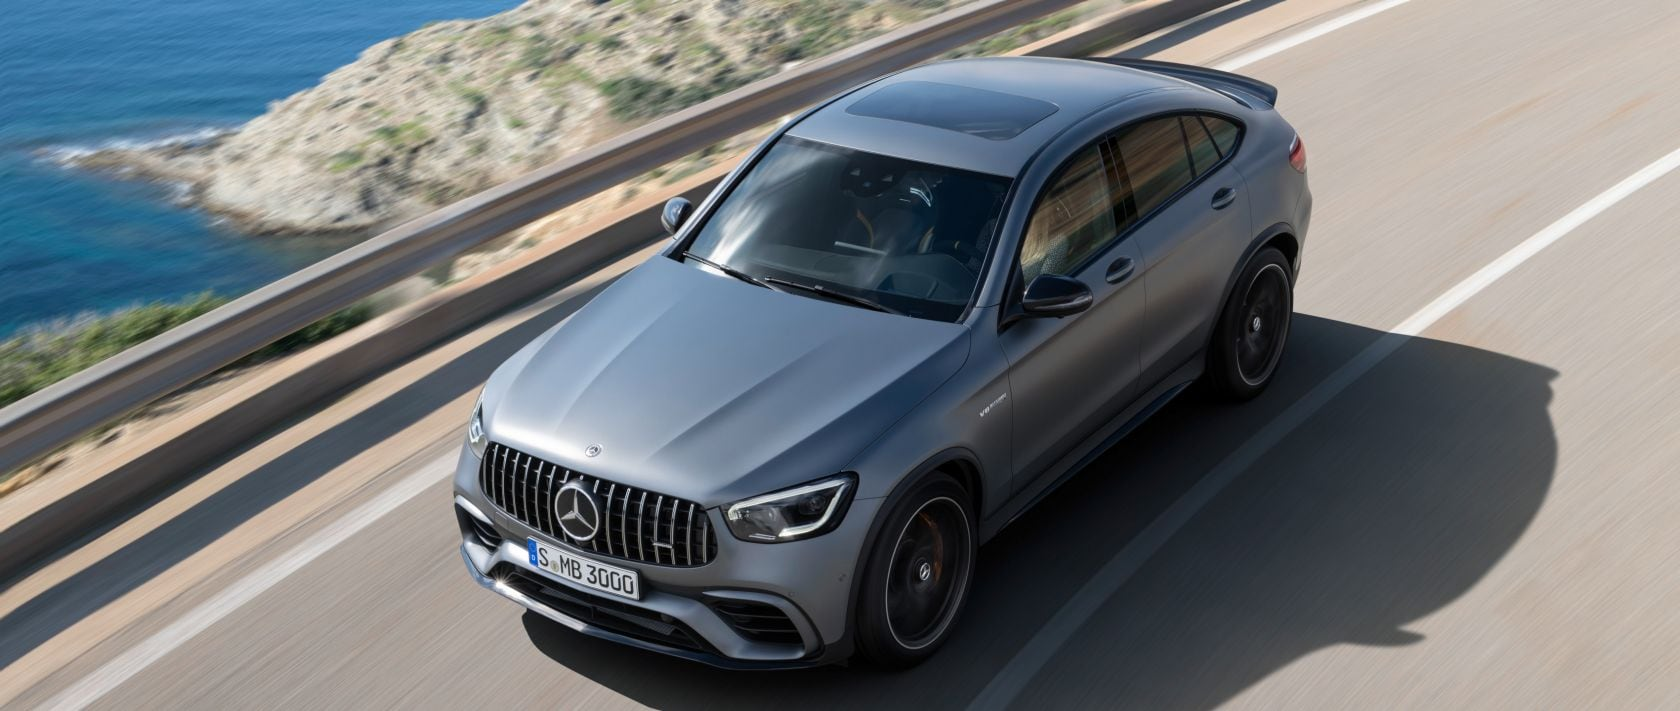 Bird's eye view of the new 2019 Mercedes-AMG GLC 63 S 4MATIC+ Coupé (C 253) in designo selenite grey magno on a country road.